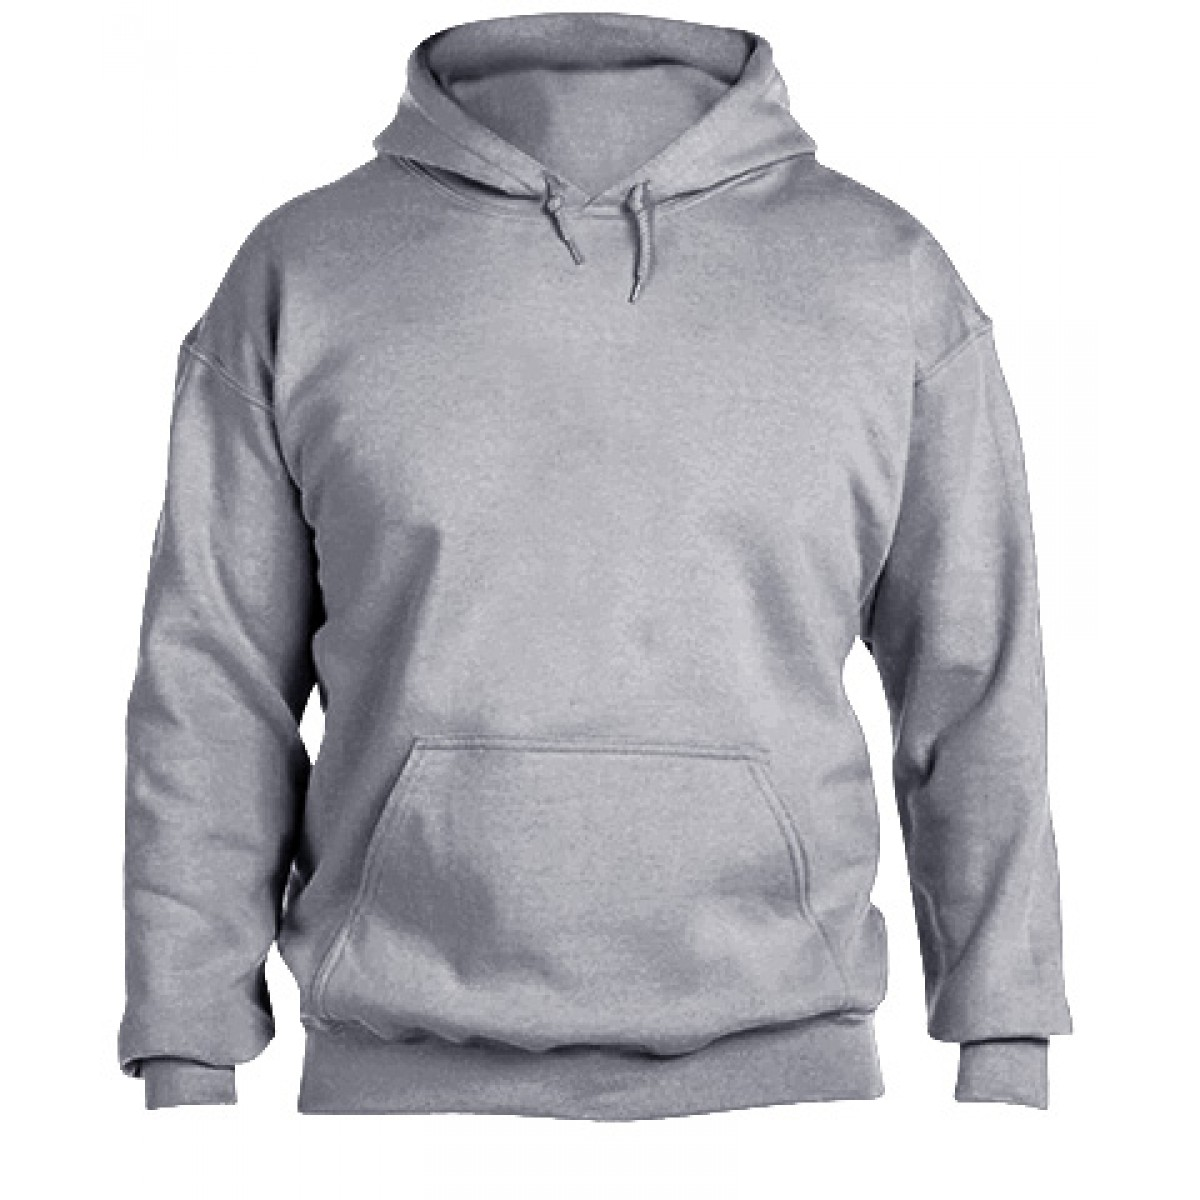 Hooded Sweatshirt 50/50 Heavy Blend-Sports Grey-S